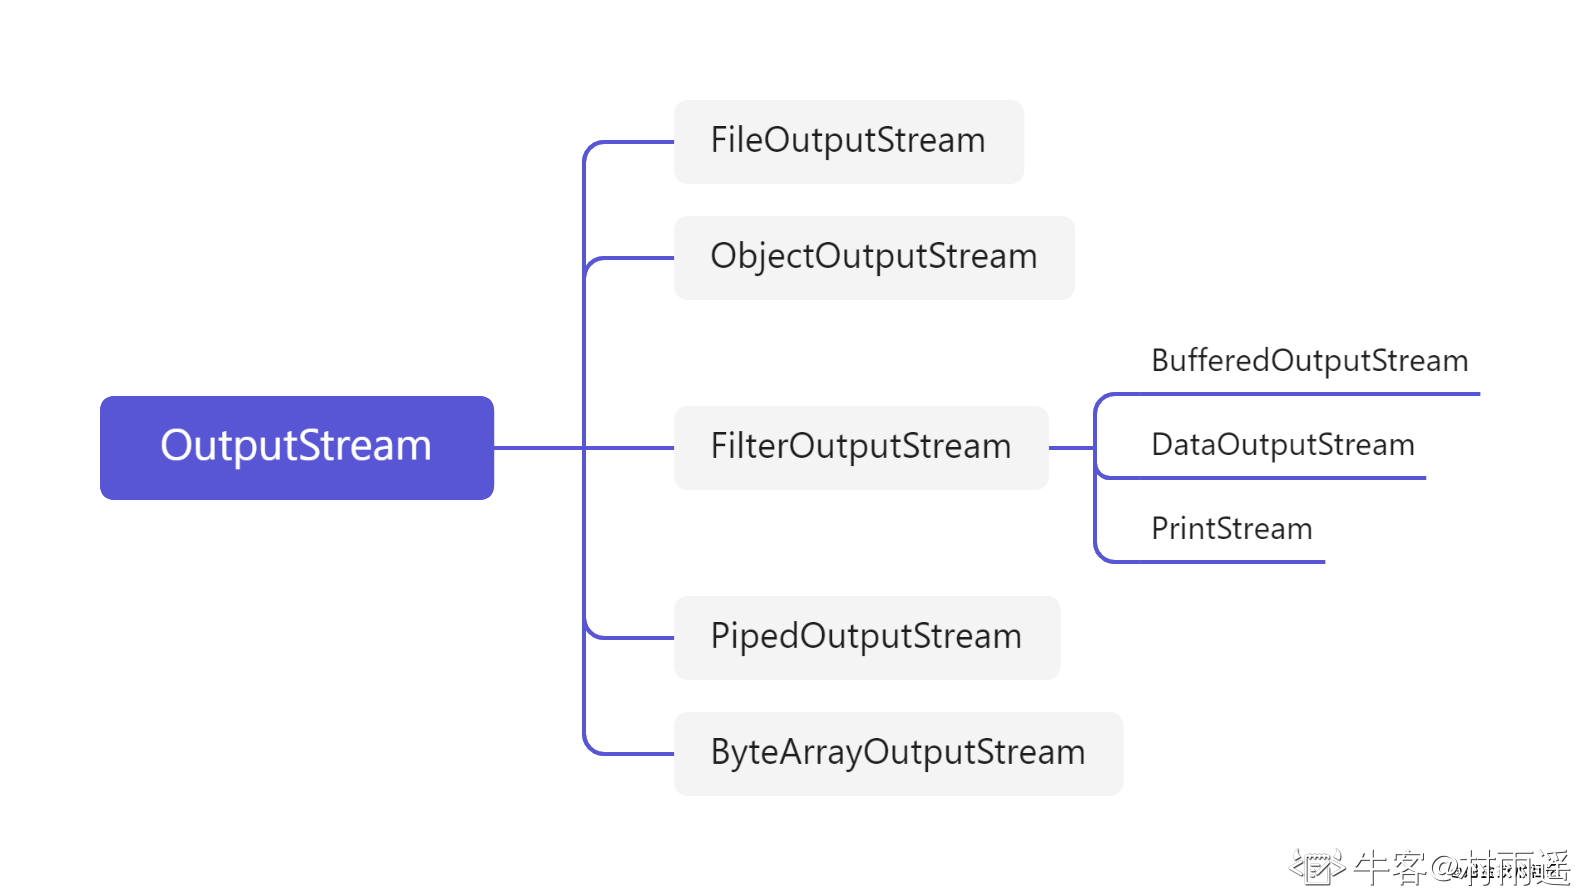 OutputStream.png